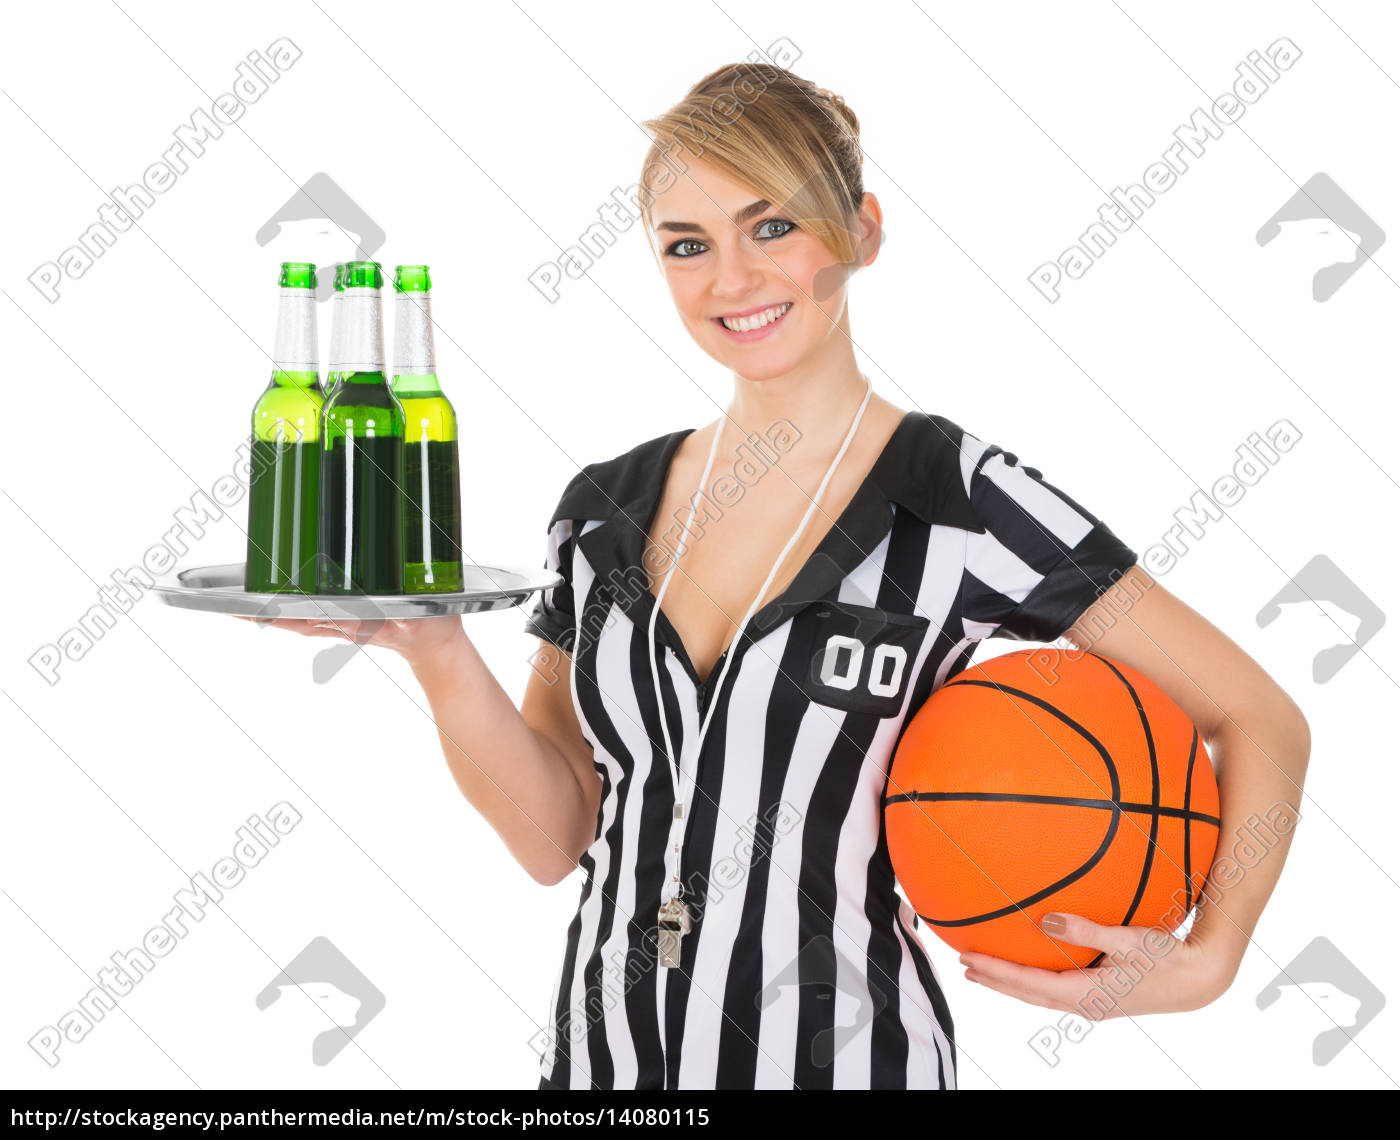 referee, with, drinks, and, basketball - 14080115